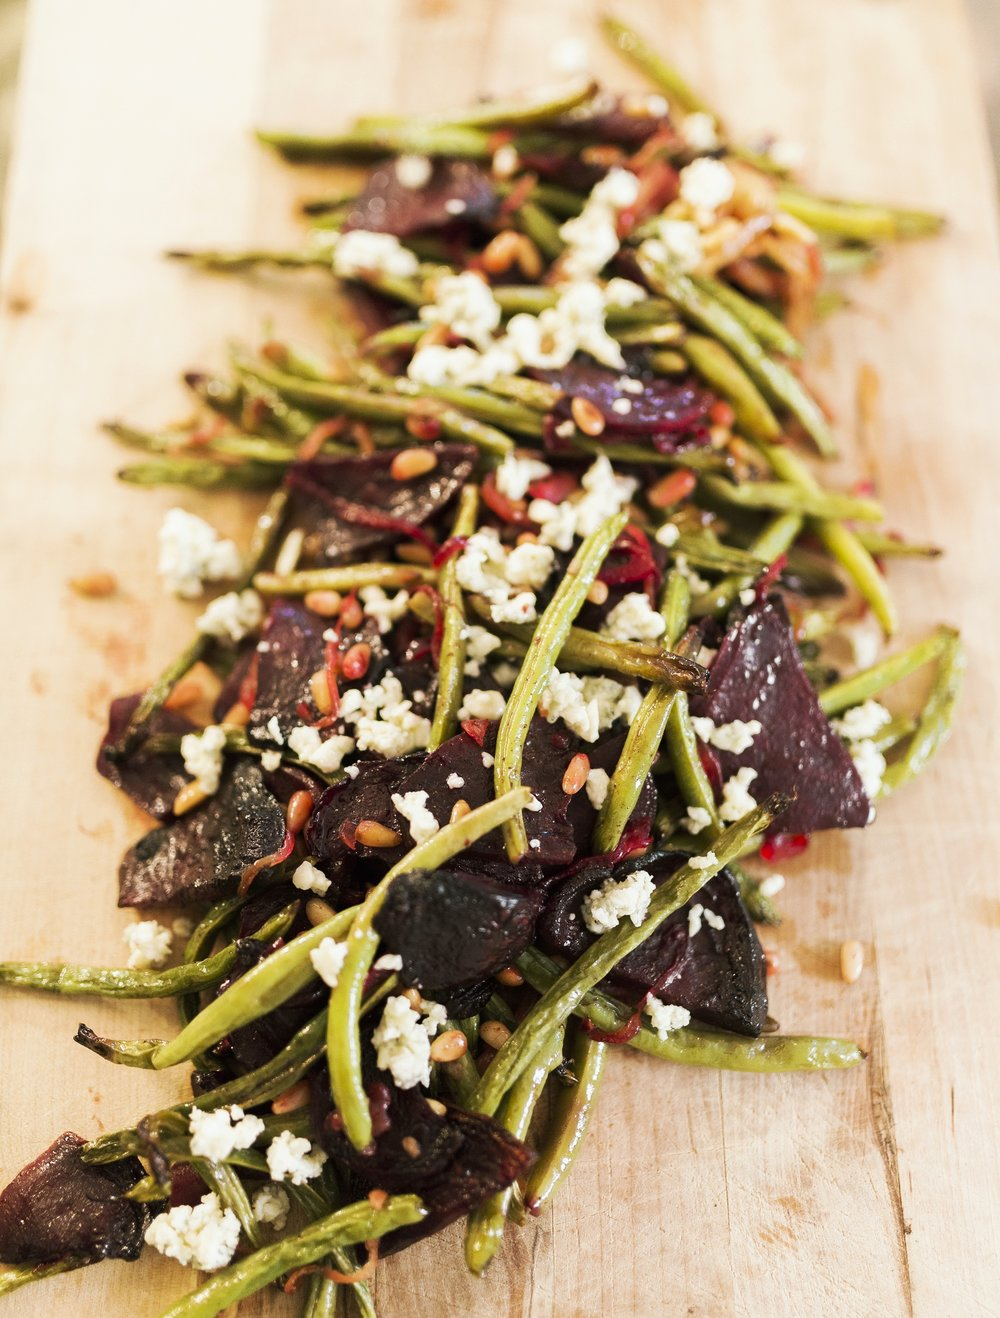 Roasted Green Beans with Beets, Gorgonzola and Toasted Pine Nuts